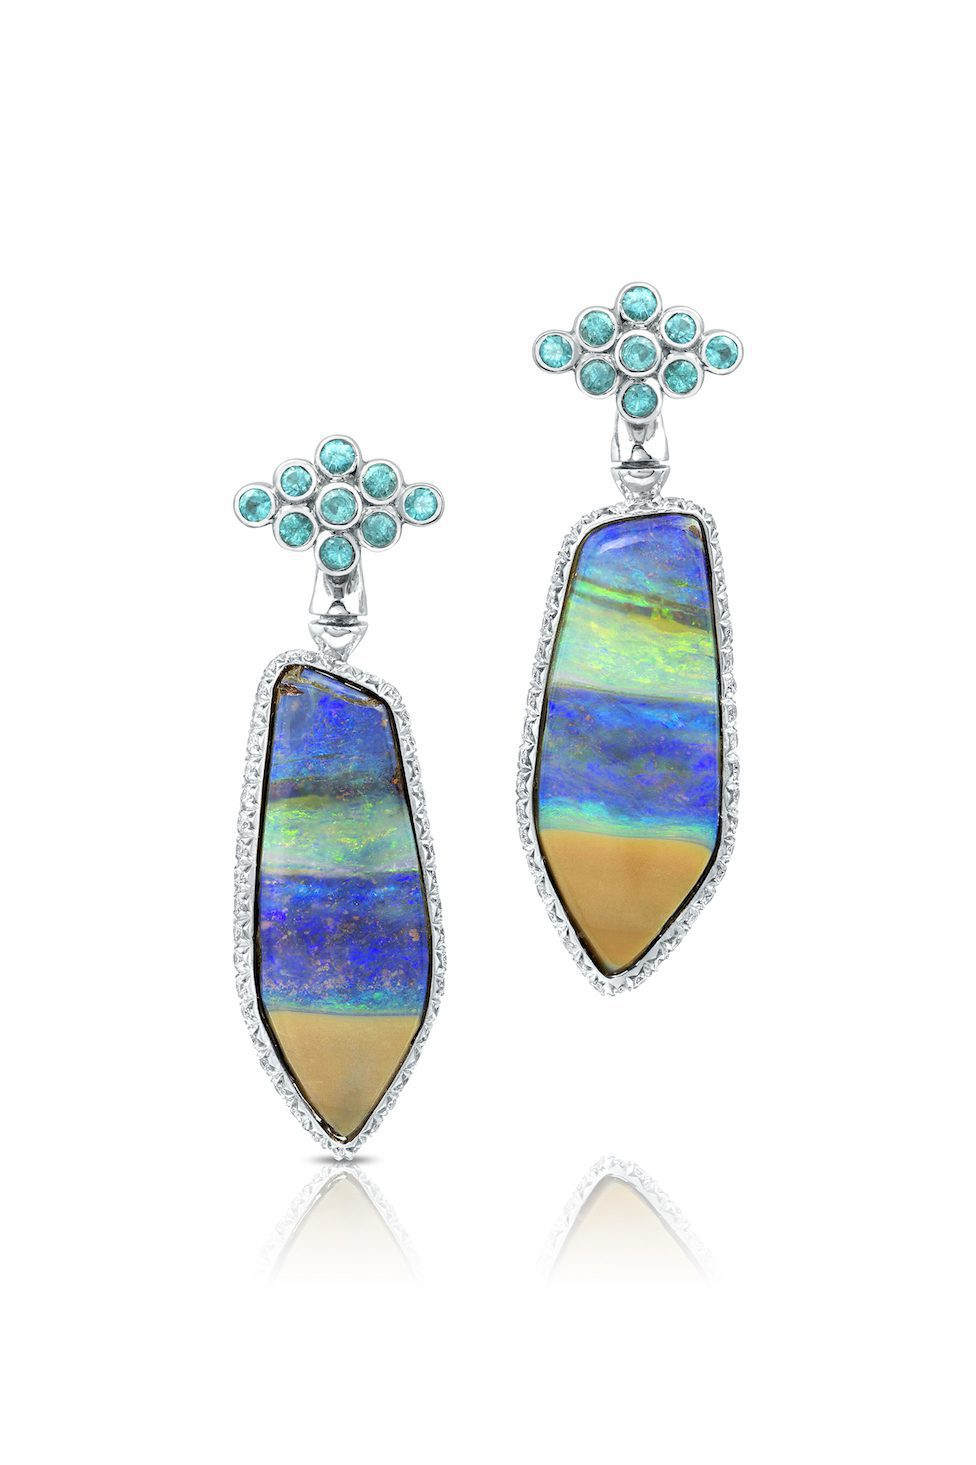 gem trends - reversible opal earrings, front